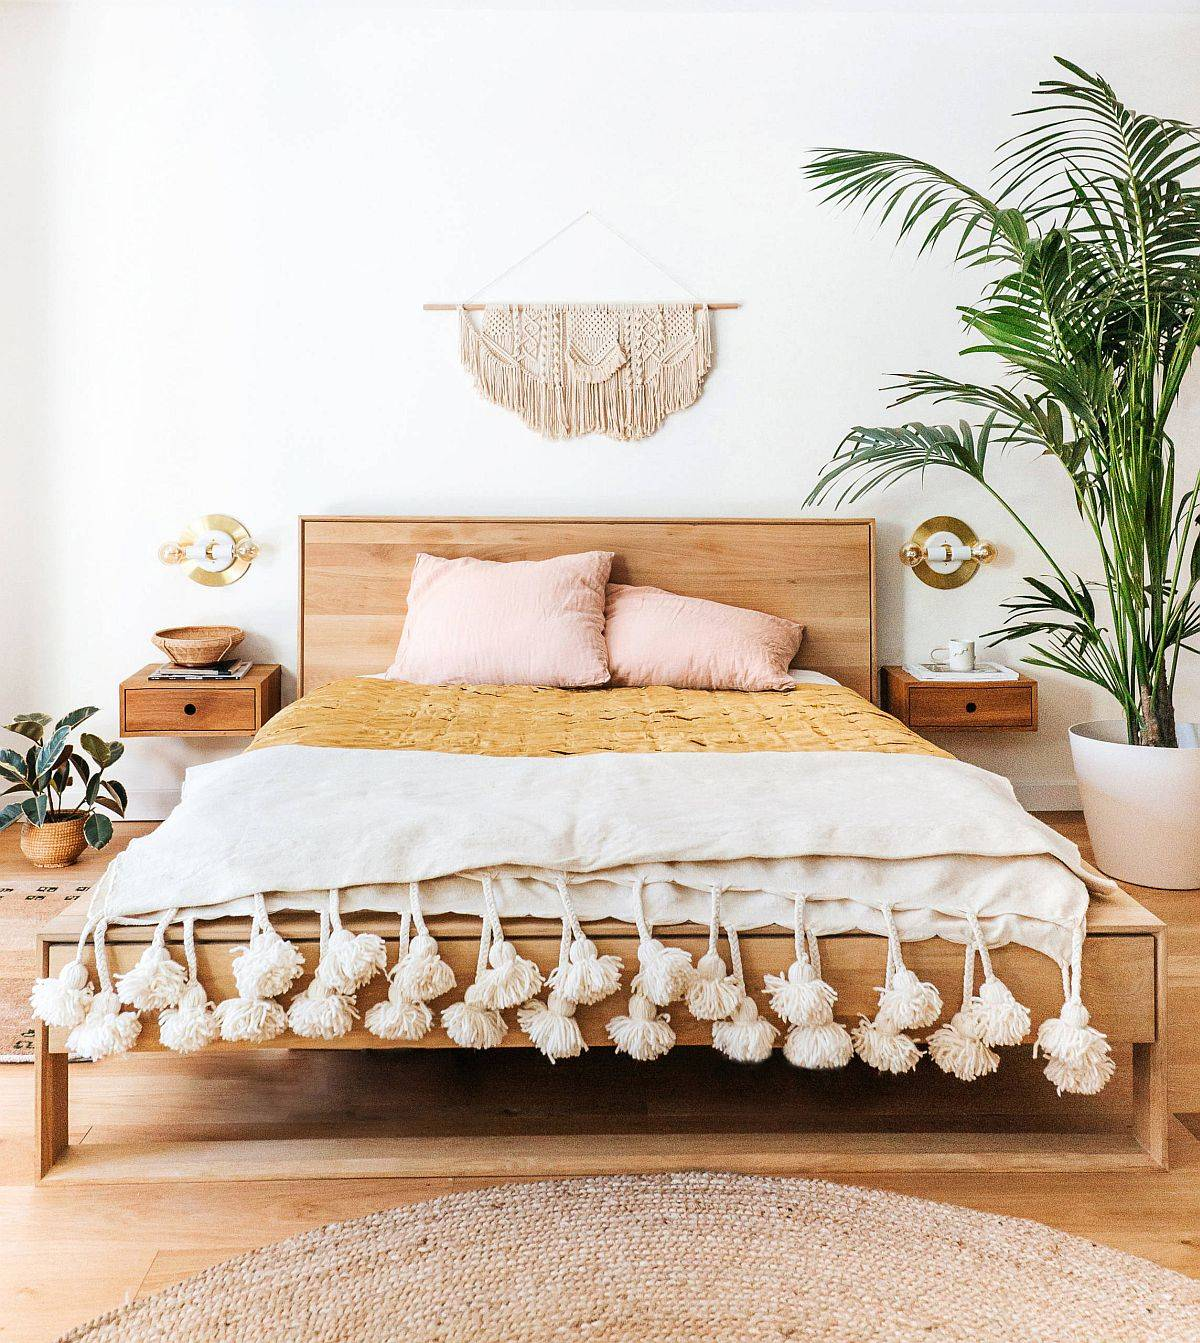 Light wooden floor and natural textures create a lovely, cozy and casual modern bedroom